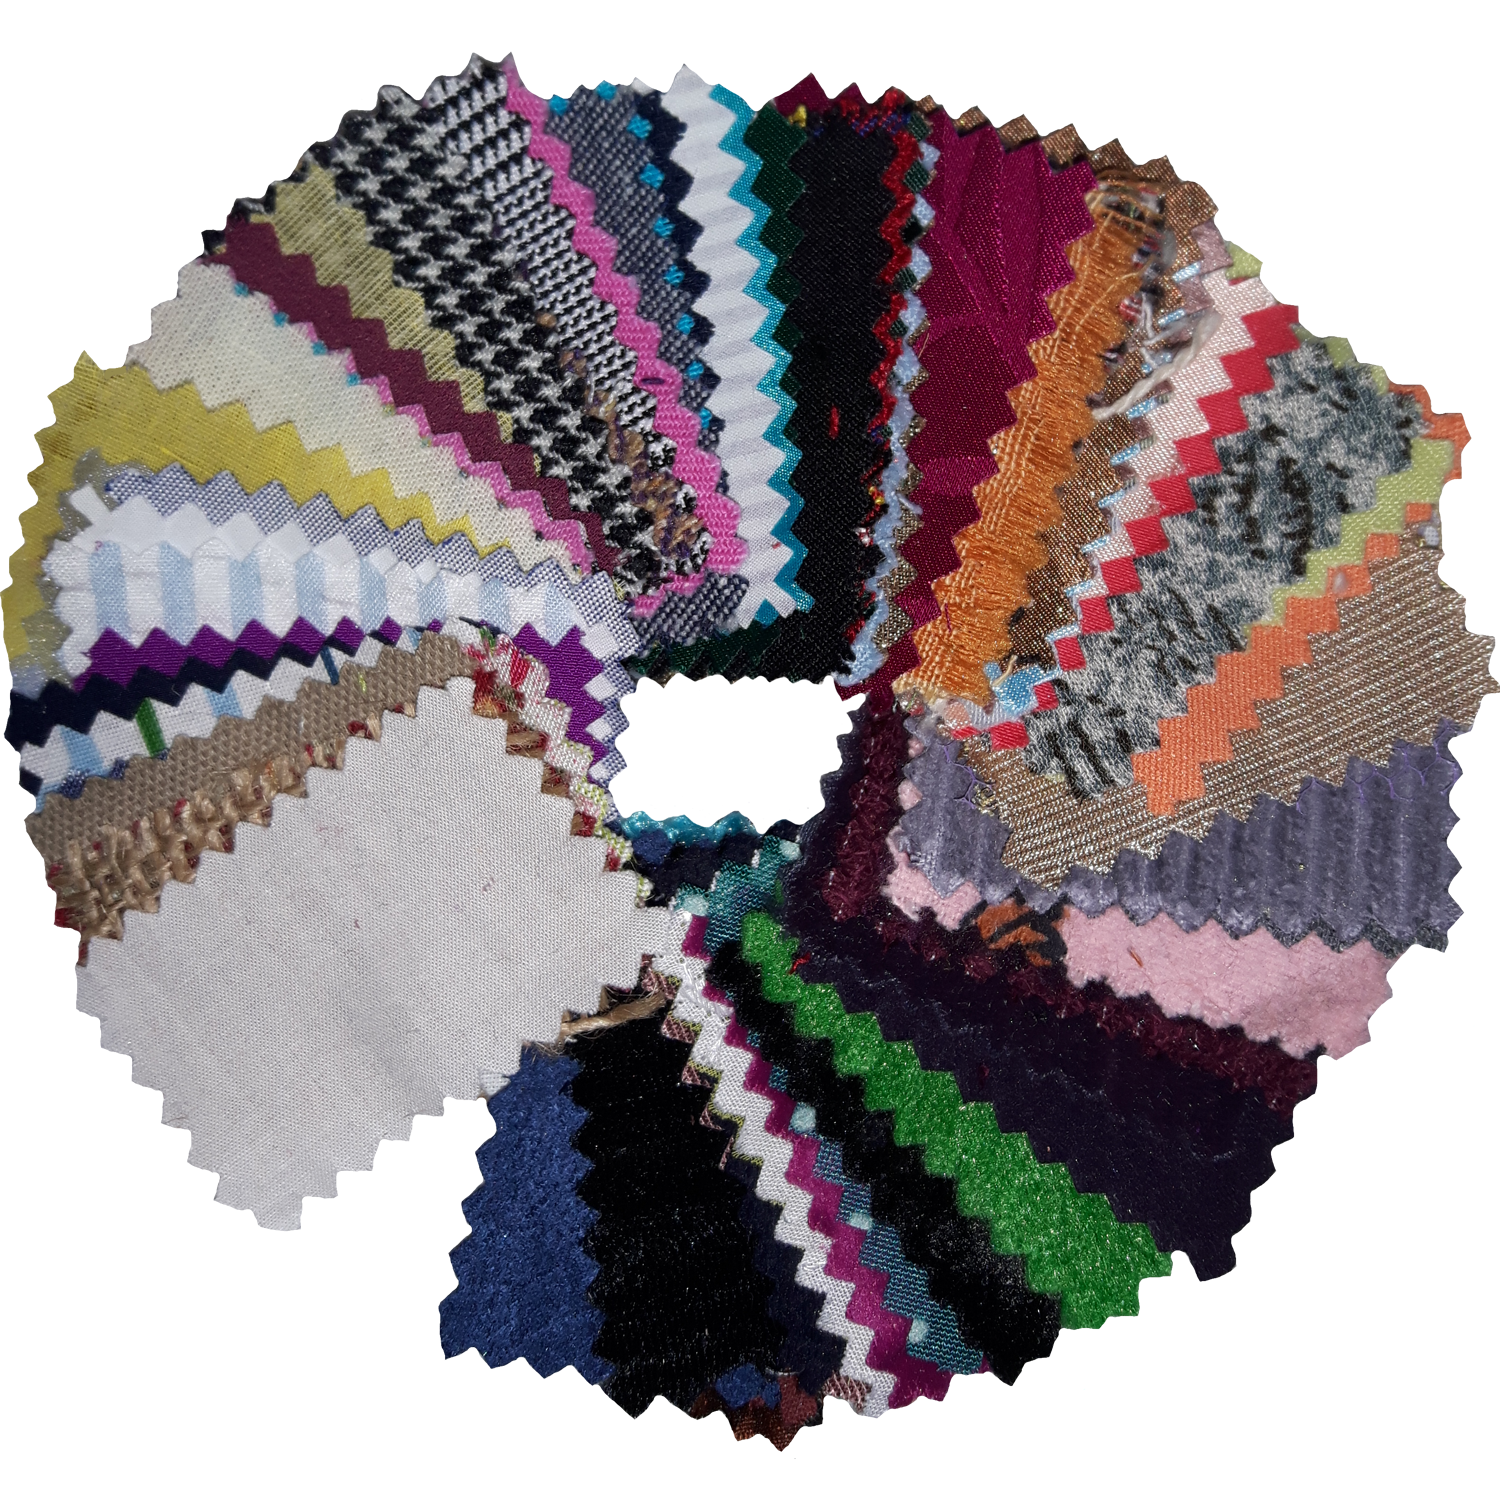 fabric-swatches.png